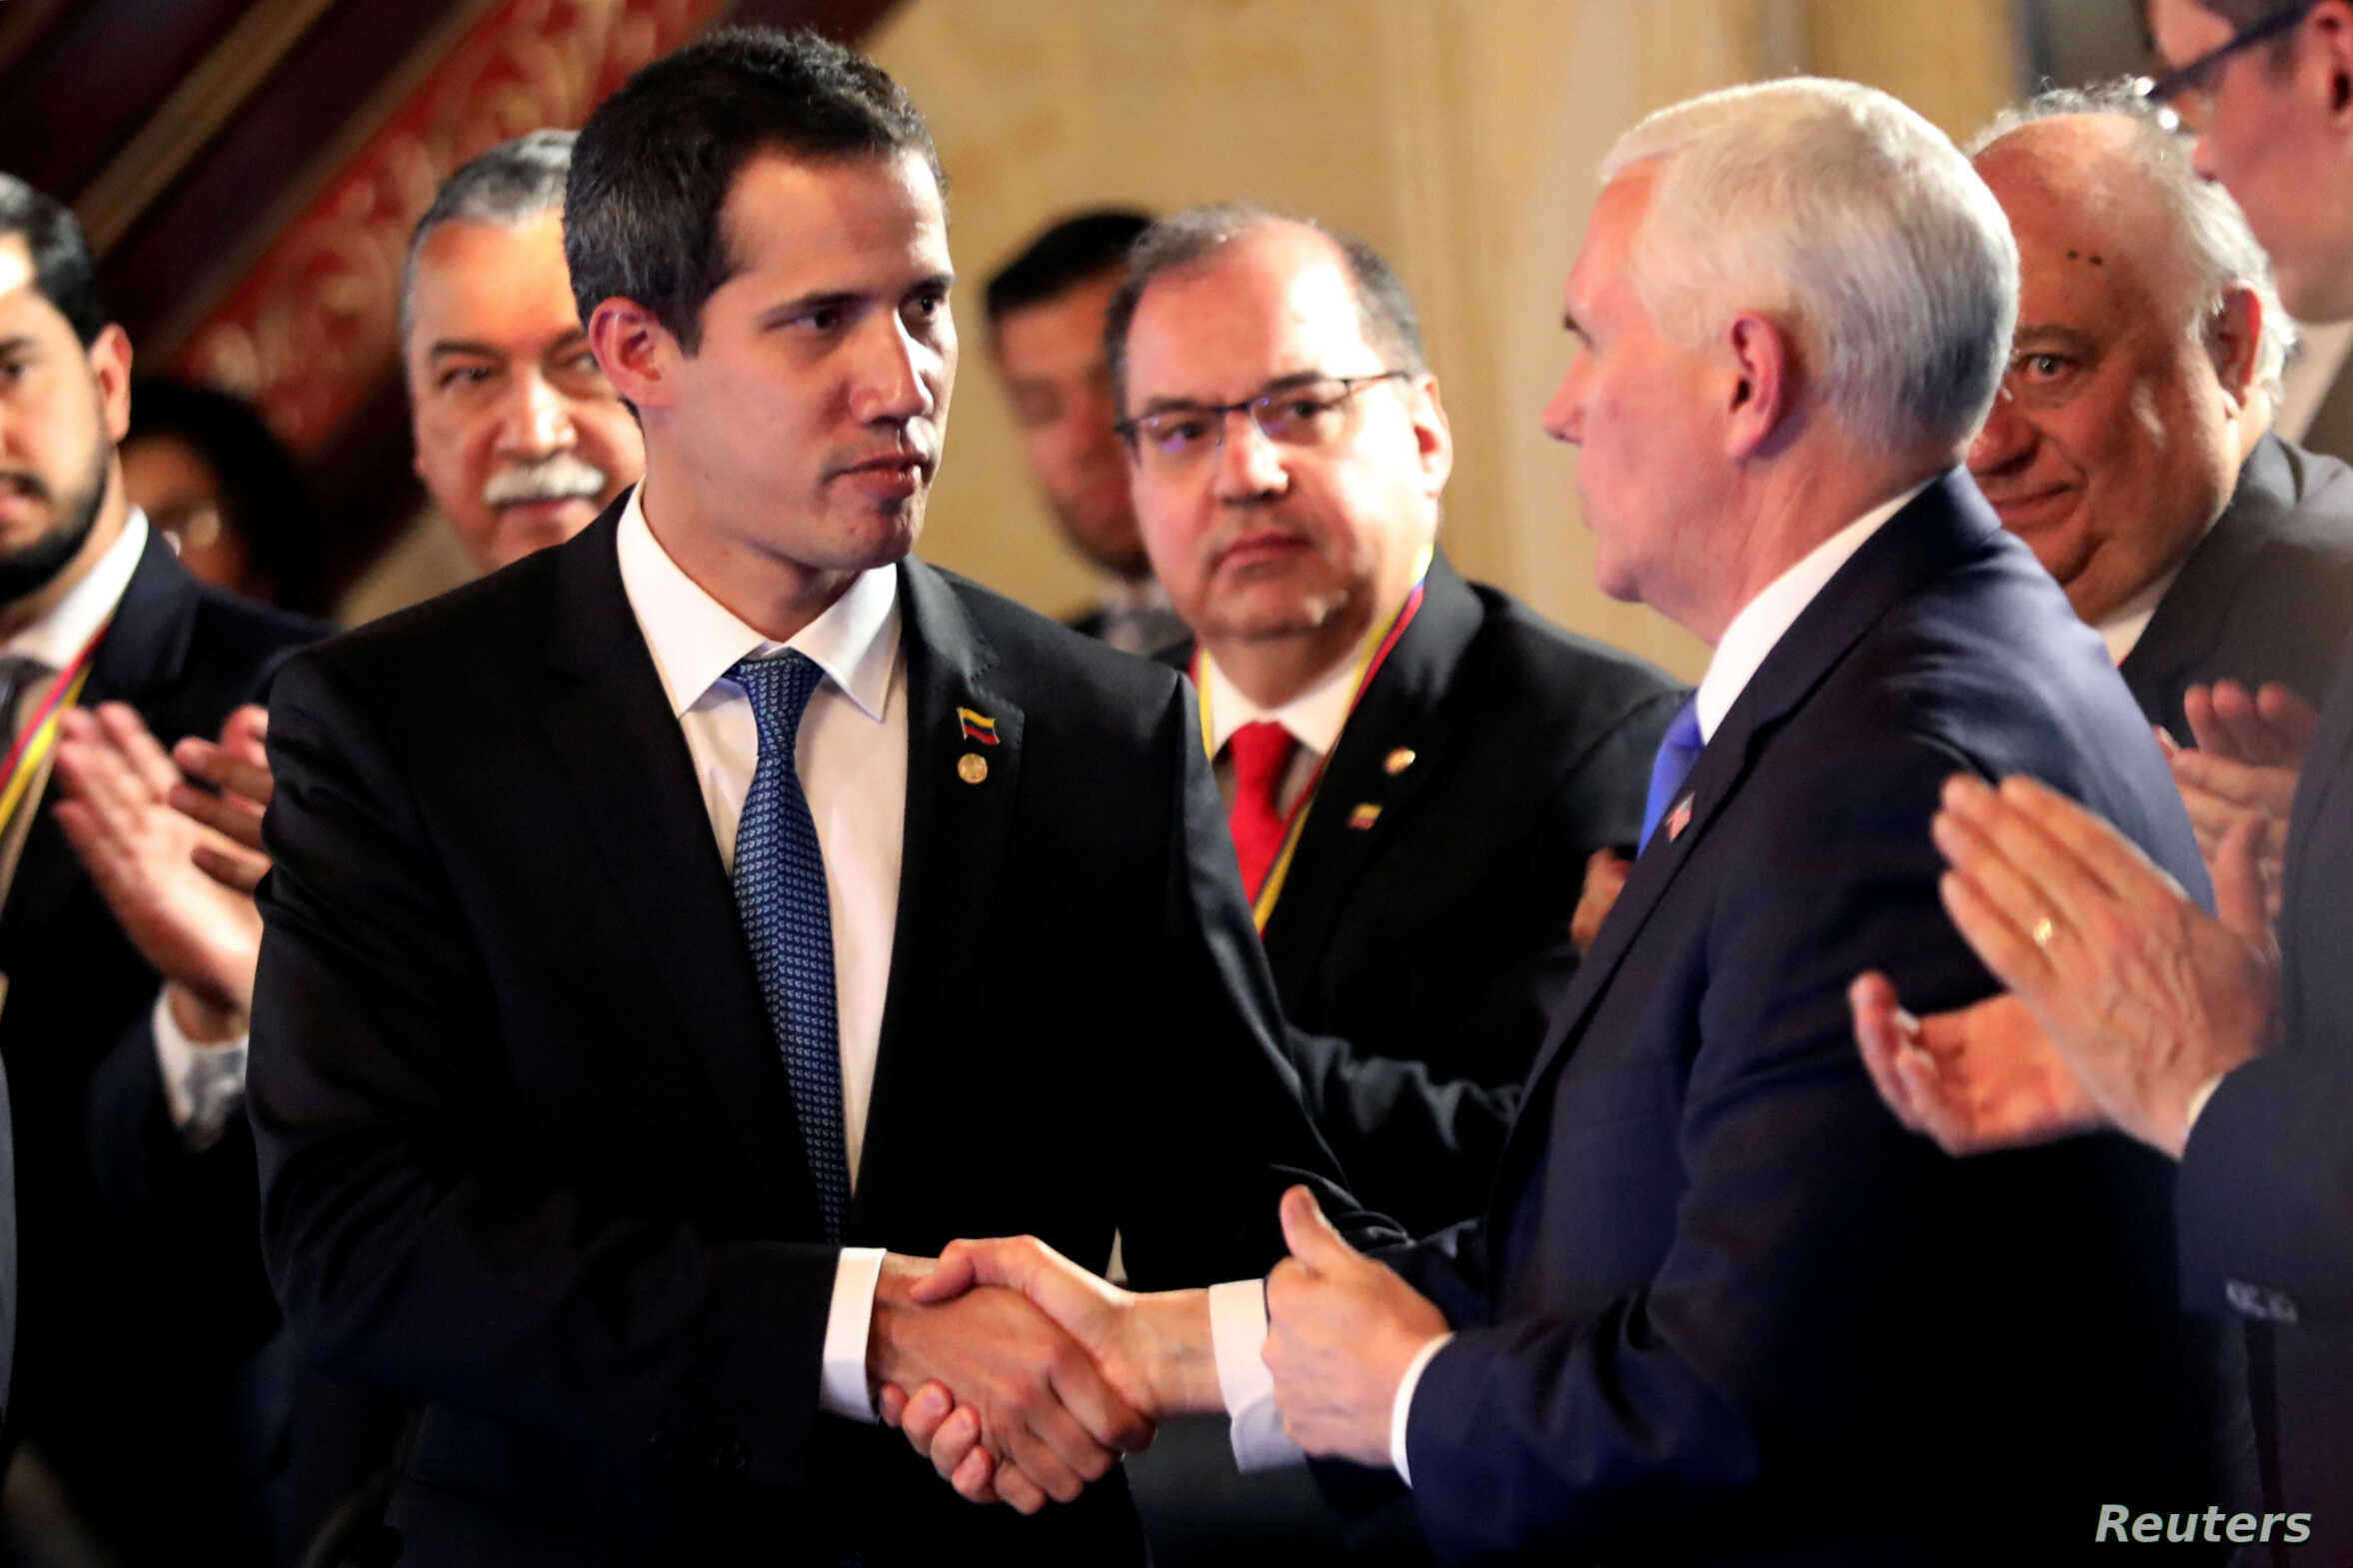 U.S. Vice President Mike Pence and Venezuelan opposition leader Juan Guaido, who many nations have recognized as the country's rightful interim ruler, shake hands during a meeting of the Lima Group in Bogota, Colombia, Feb. 25, 2019.